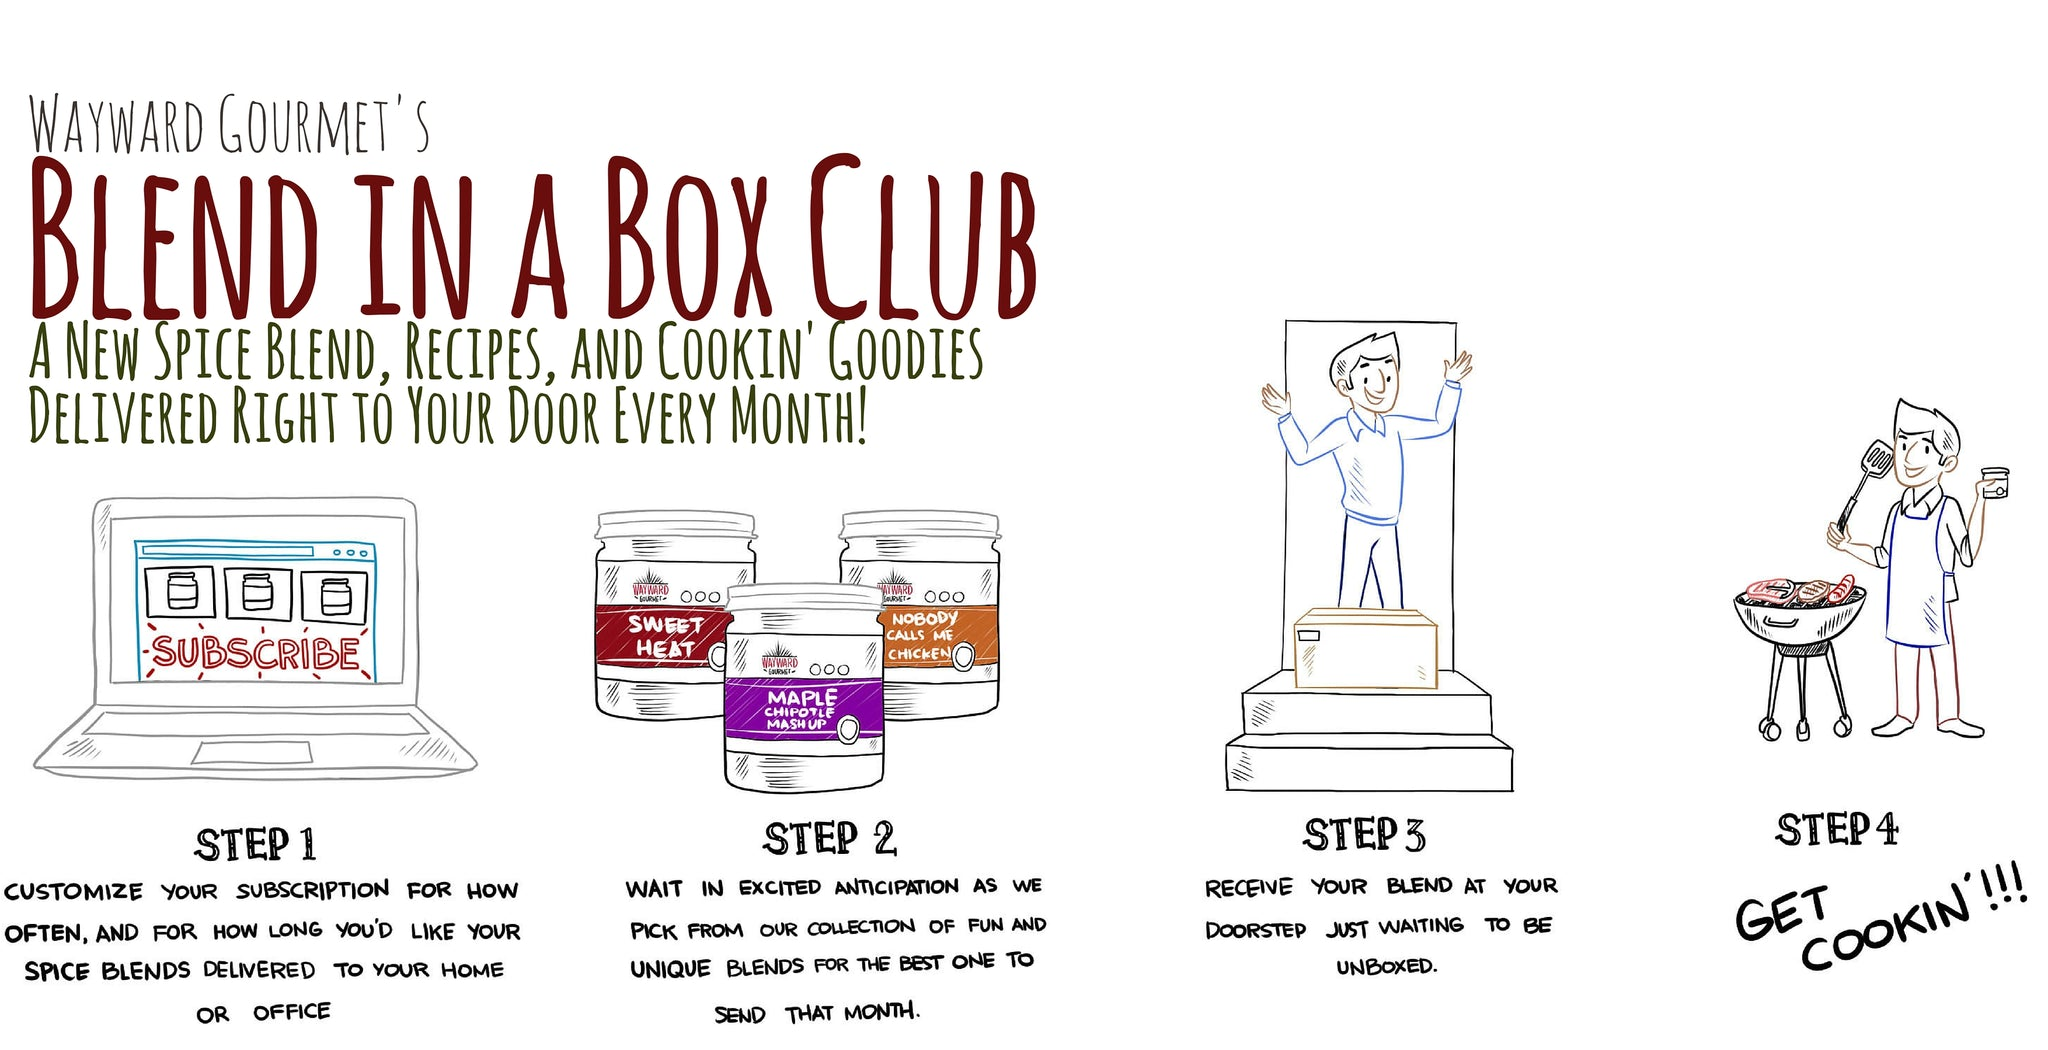 Blend in a Box Club | Wayward Gourmet | Spice Blends | Spice Rubs | Subscription